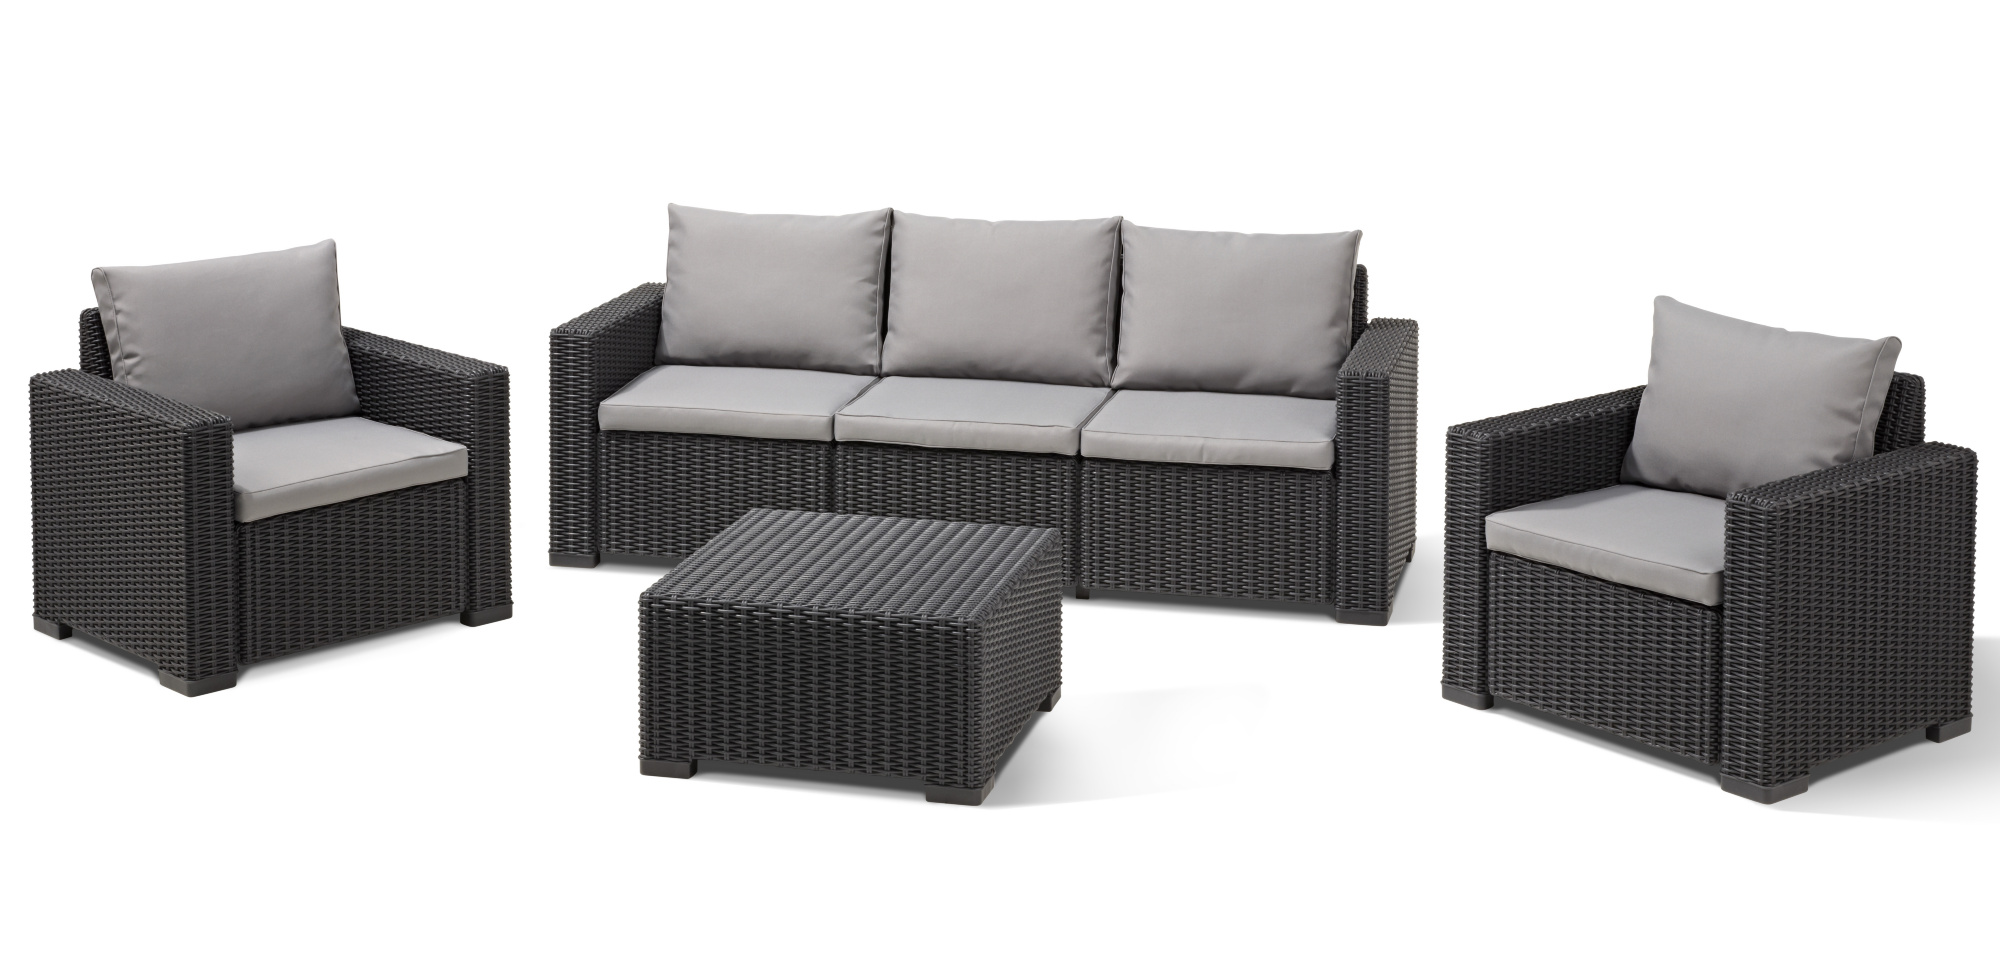 California-lounge-set-3-seater-graphite-cool-grey Meilleur De De Mr Bricolage Salon De Jardin